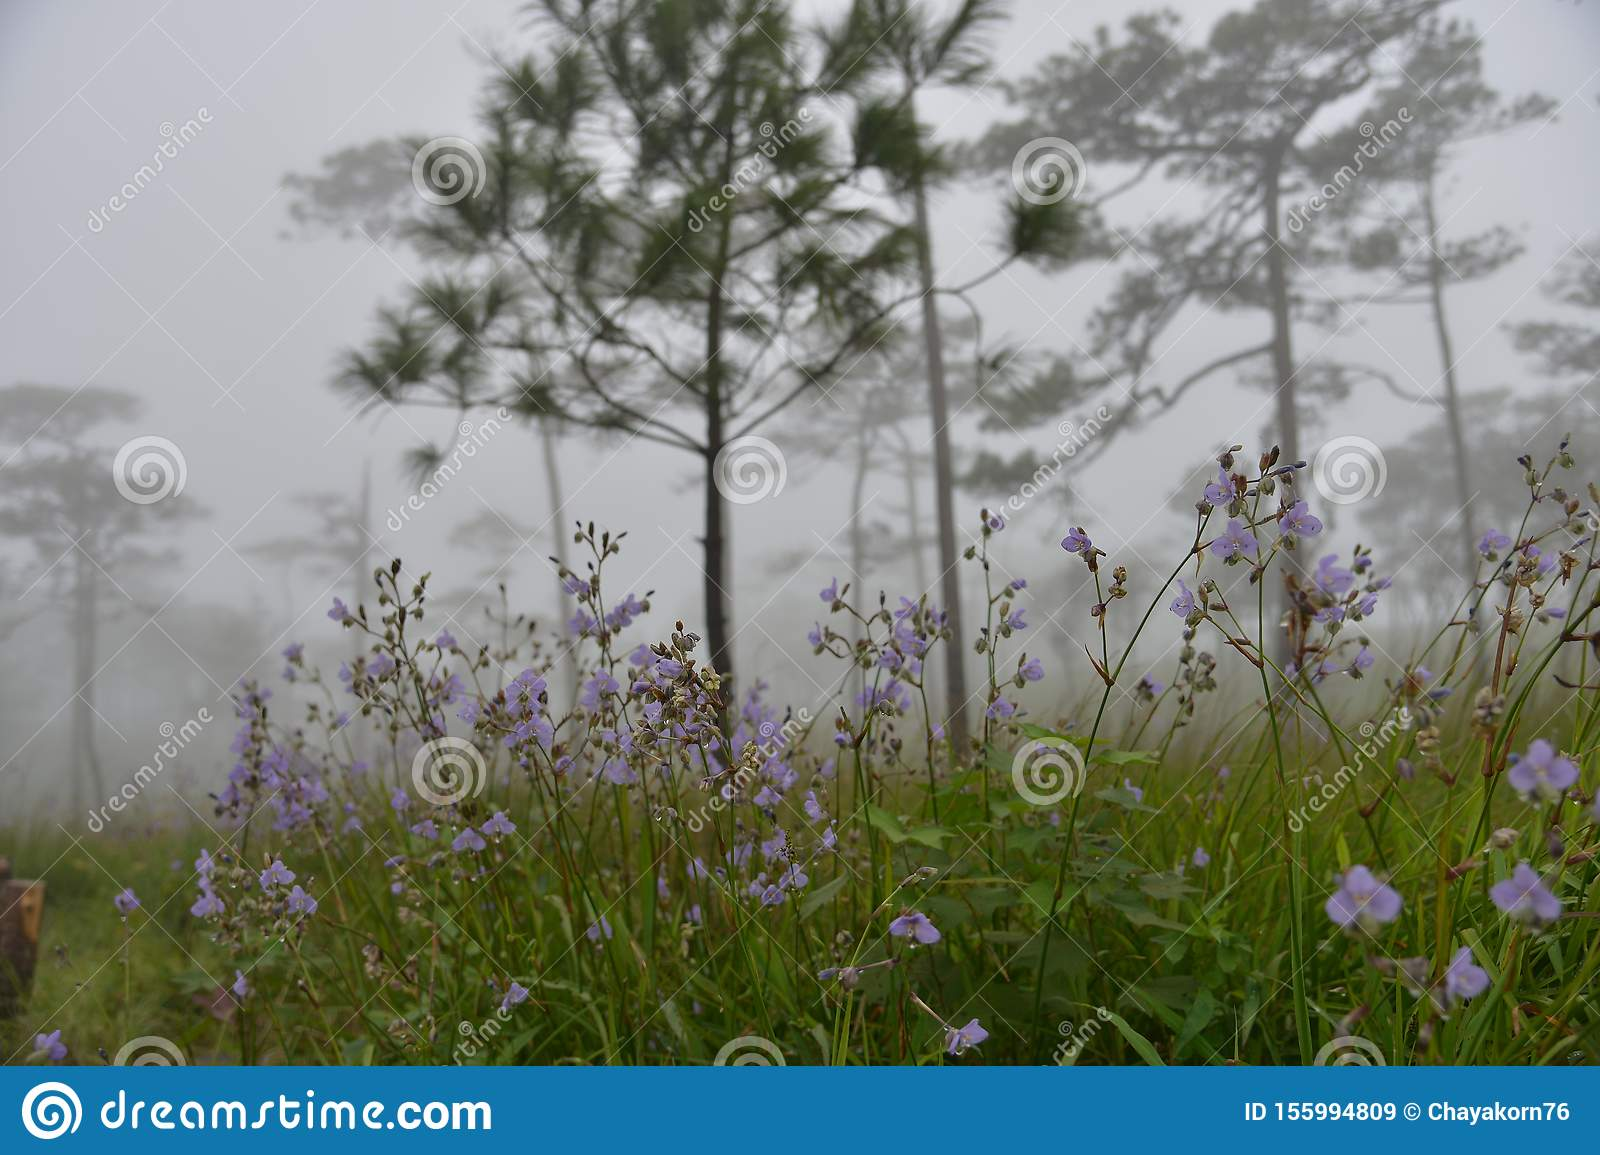 Scenic of Nature at Phu Soi Dao National Park